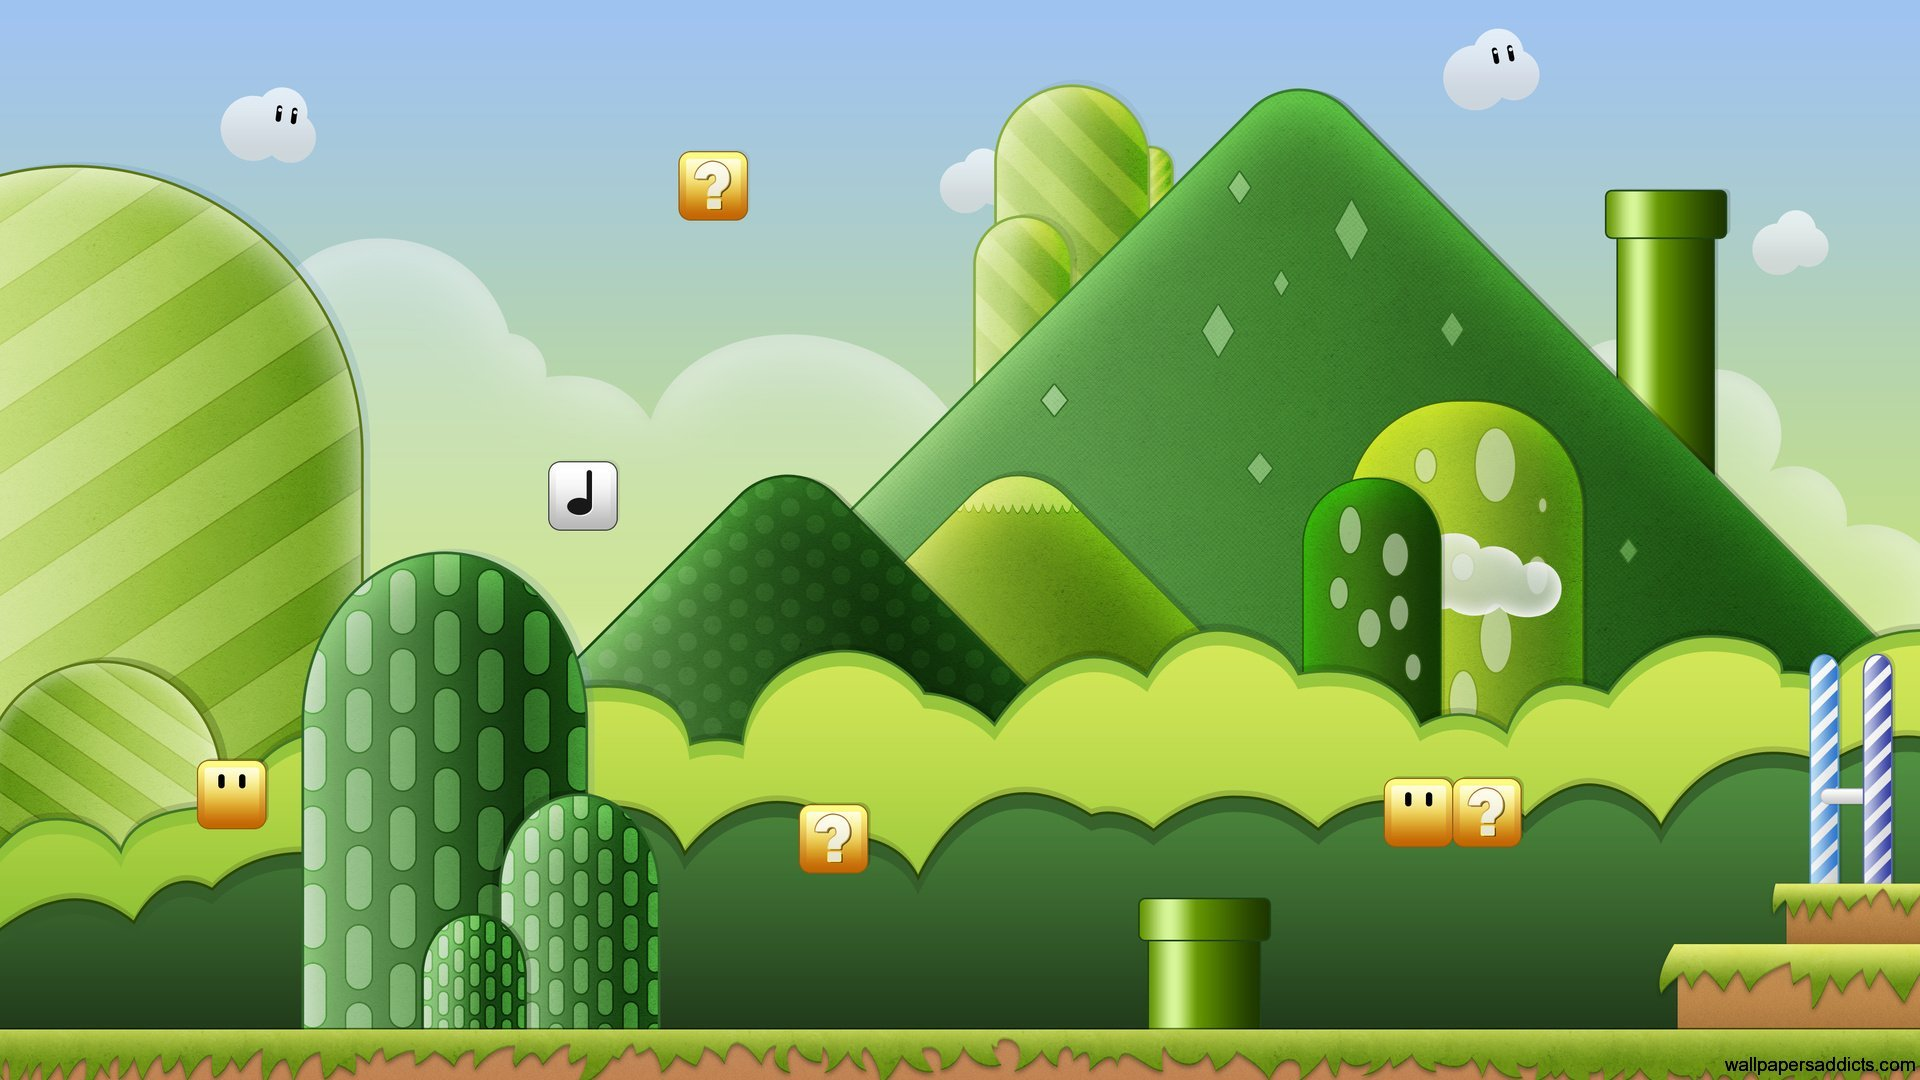 Fun In The World Of Games Hd Wallpapers: Super Mario World HD Wallpapers